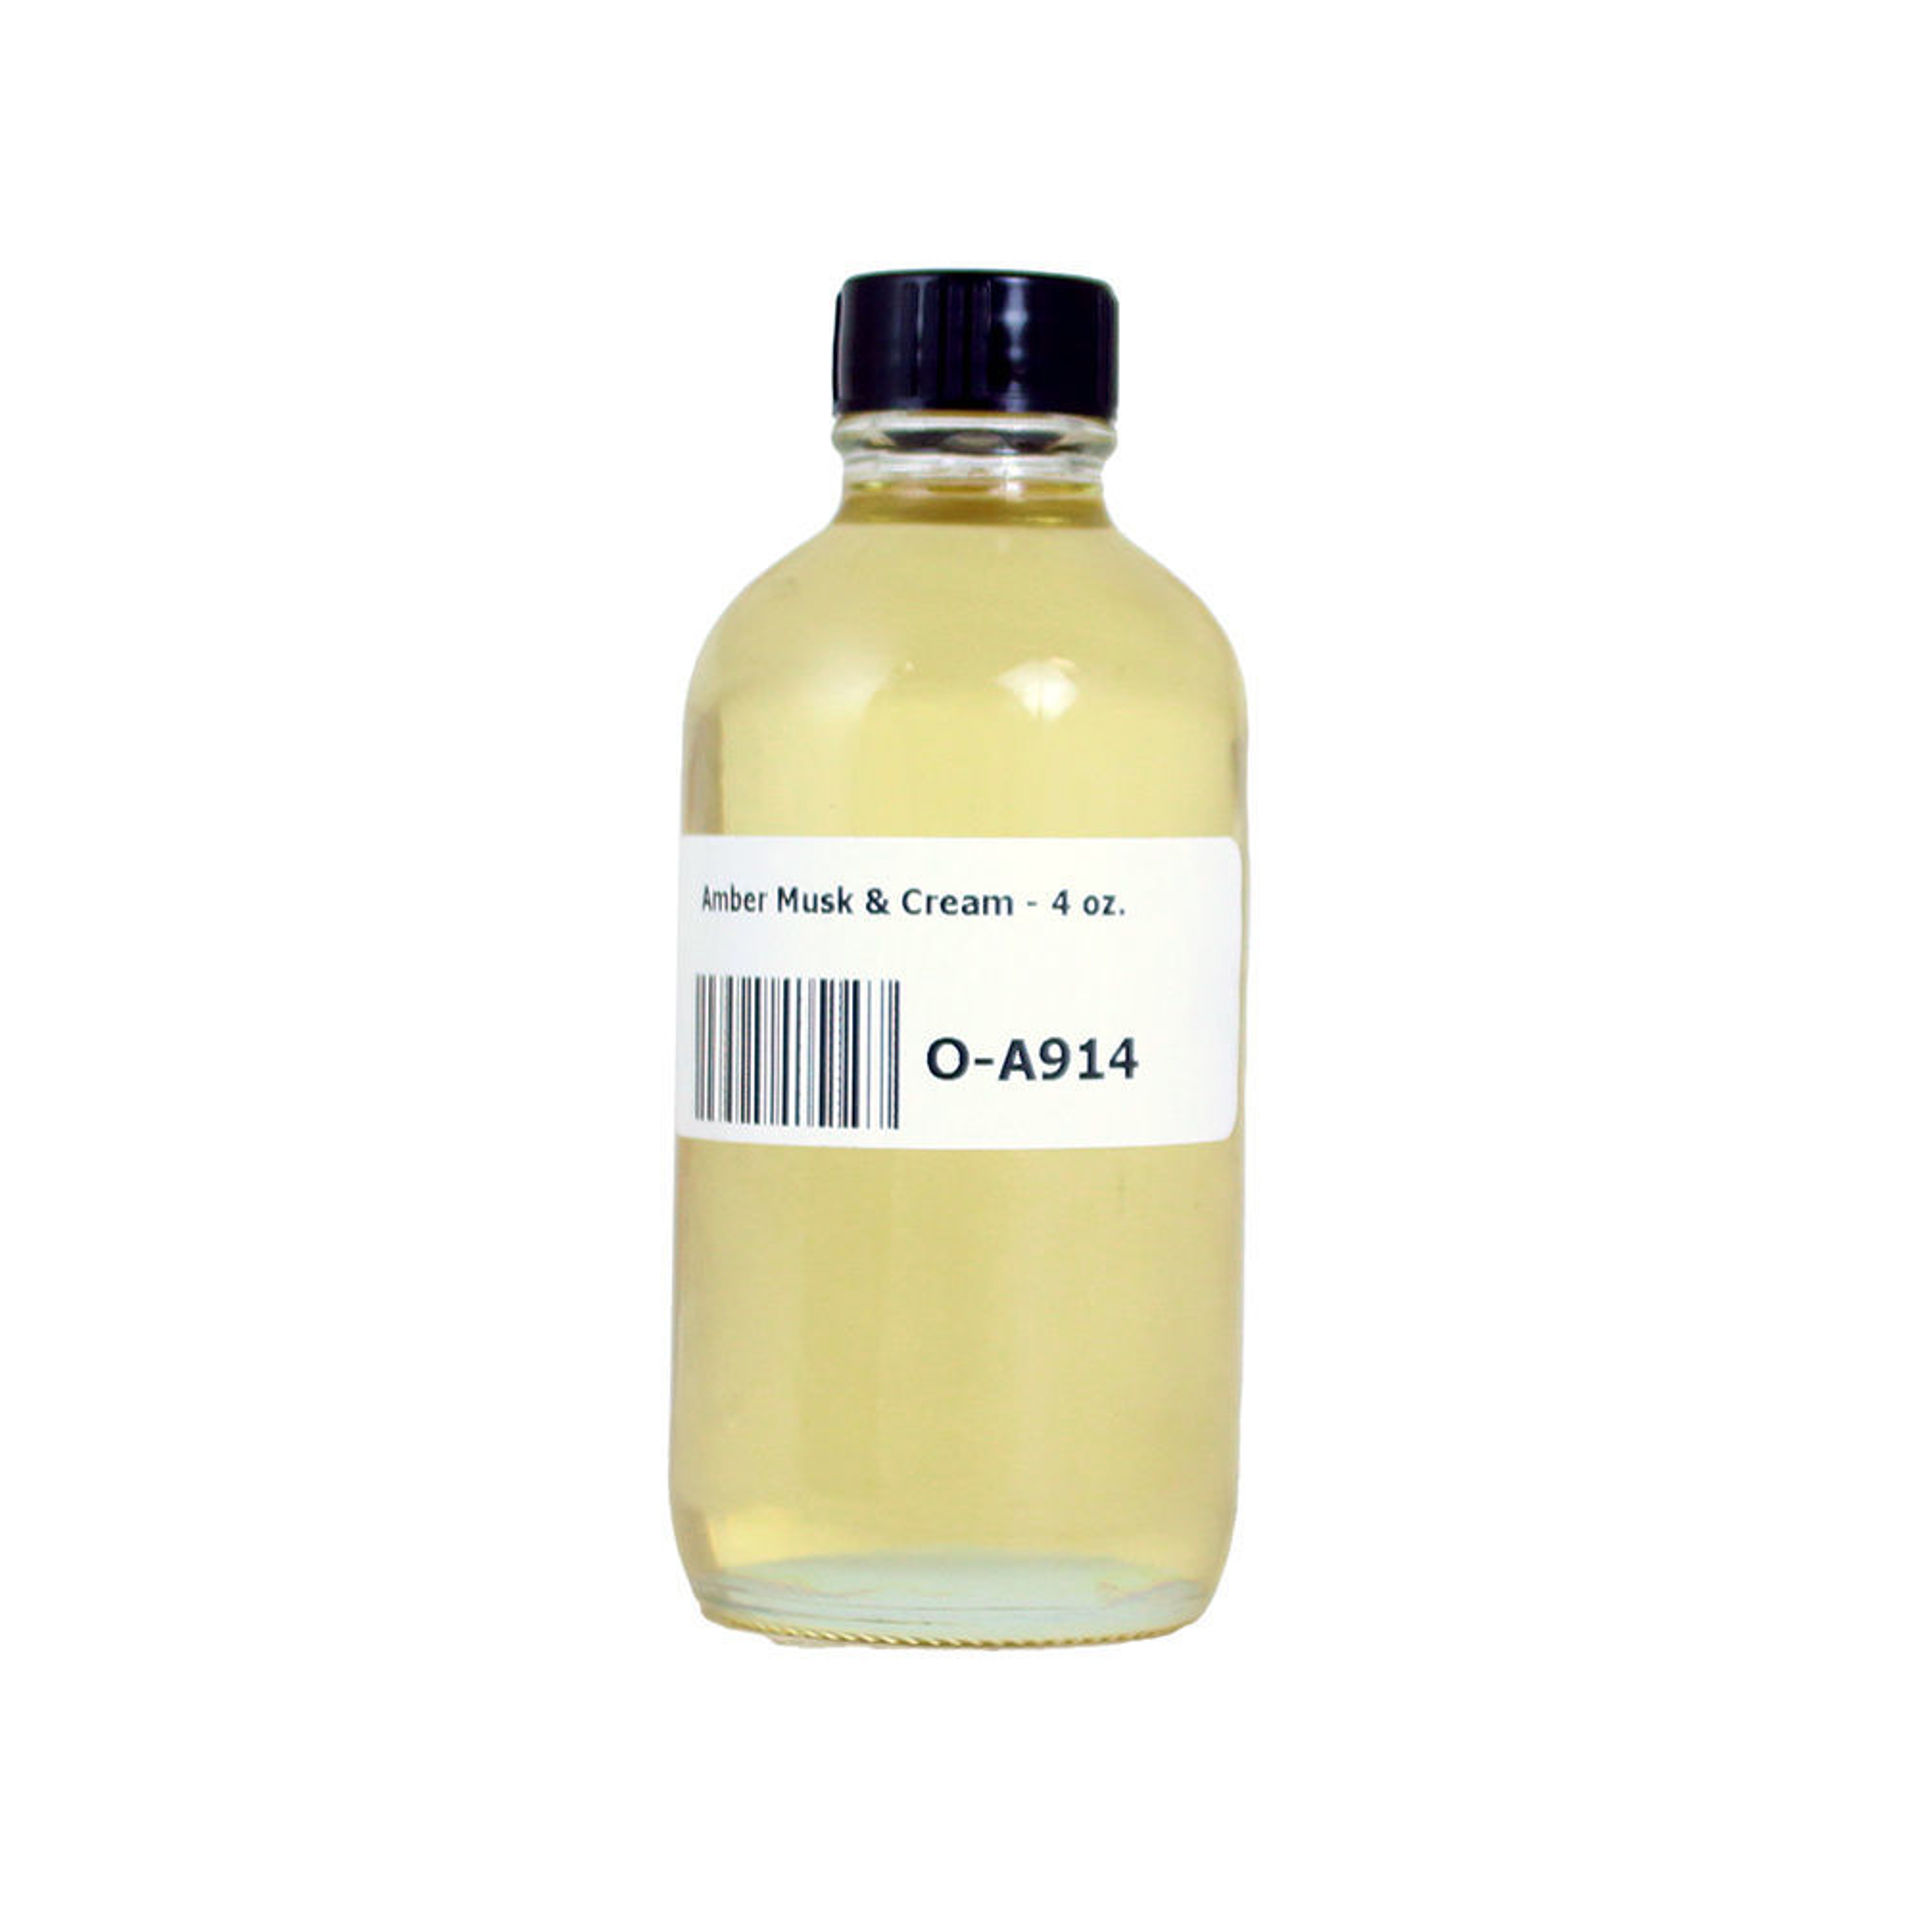 Picture of Amber Musk & Cream - 4 oz.